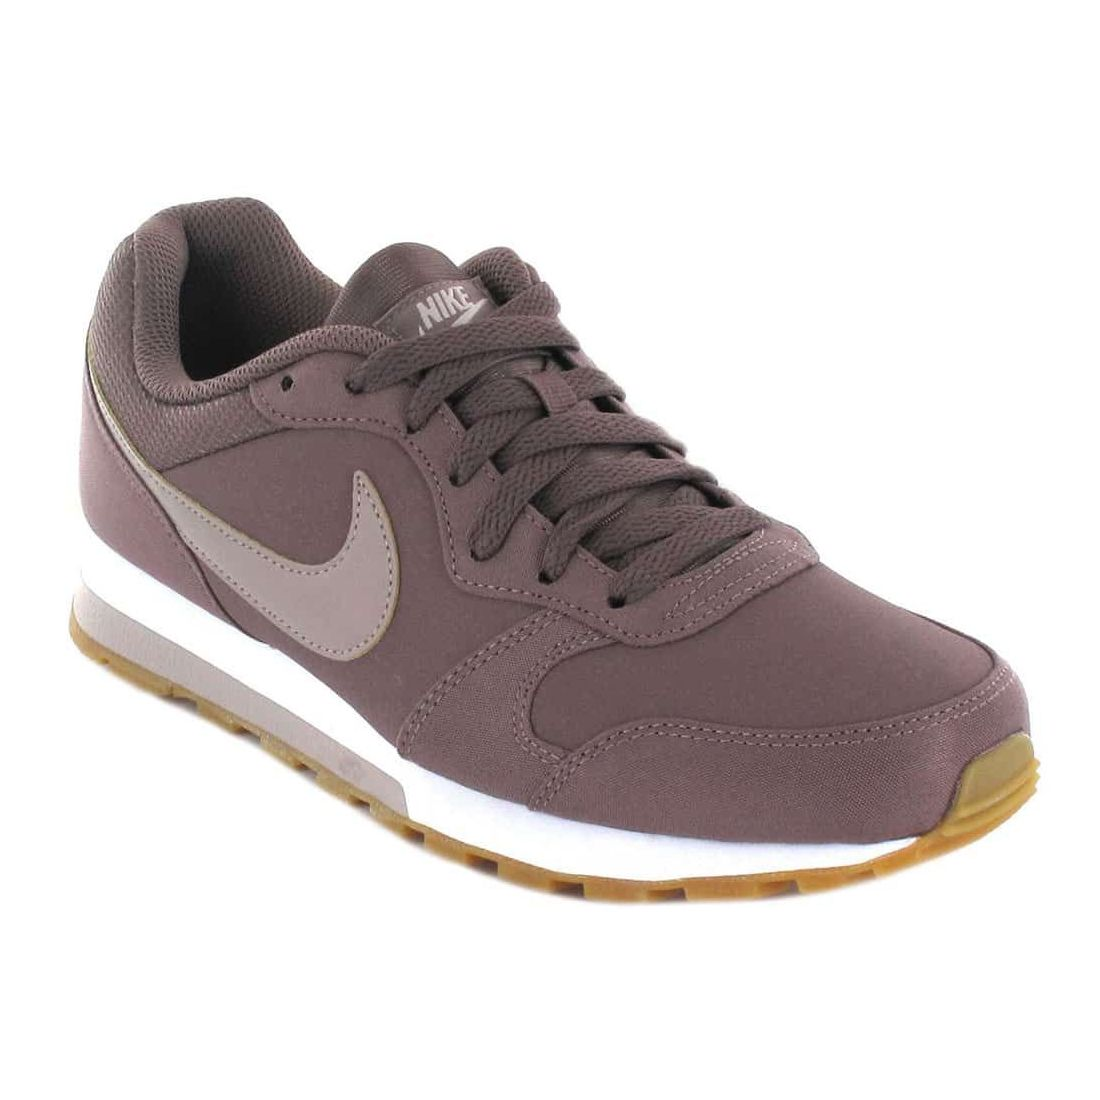 Nike MD Runner 2 W AQ9121 203 Nike Shoes Women's Casual Lifestyle Sizes: 37,5, 38, 39, 40, 41; Color: garnet